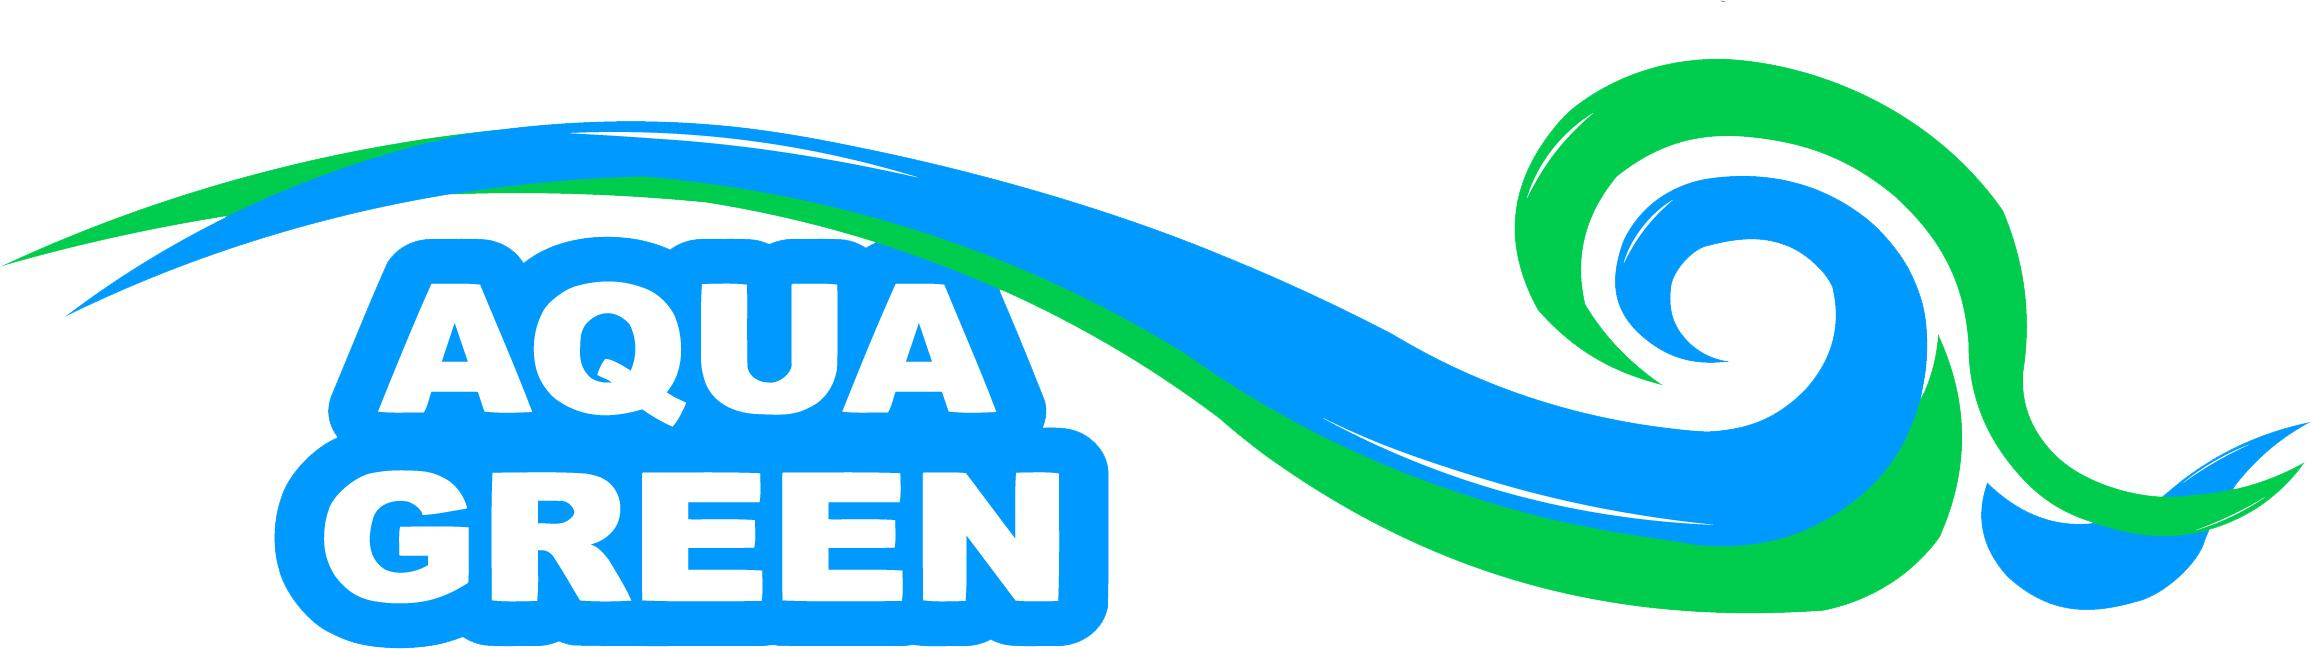 aquagreen logo_1_19